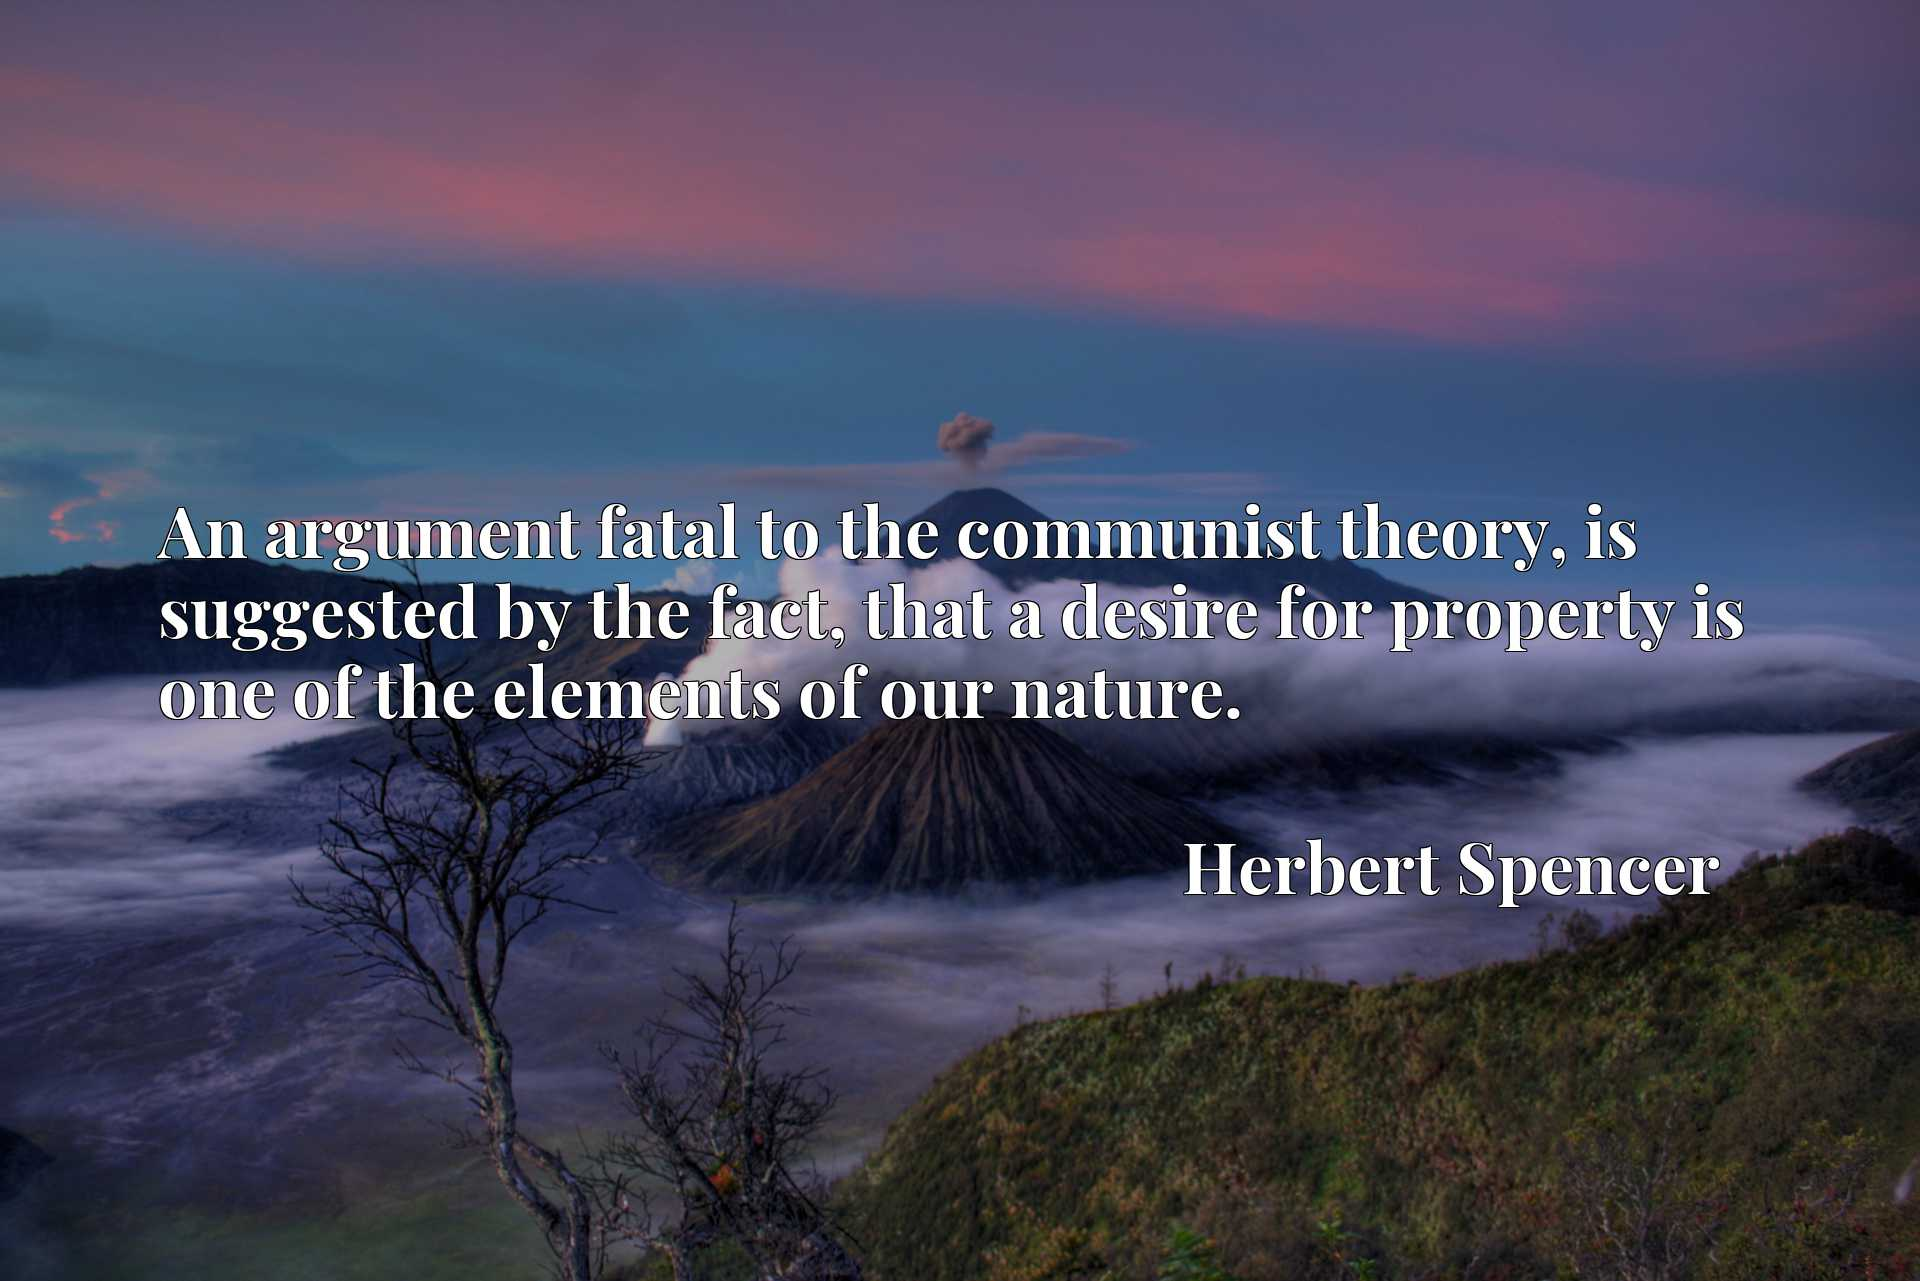 Quote Picture :An argument fatal to the communist theory, is suggested by the fact, that a desire for property is one of the elements of our nature.